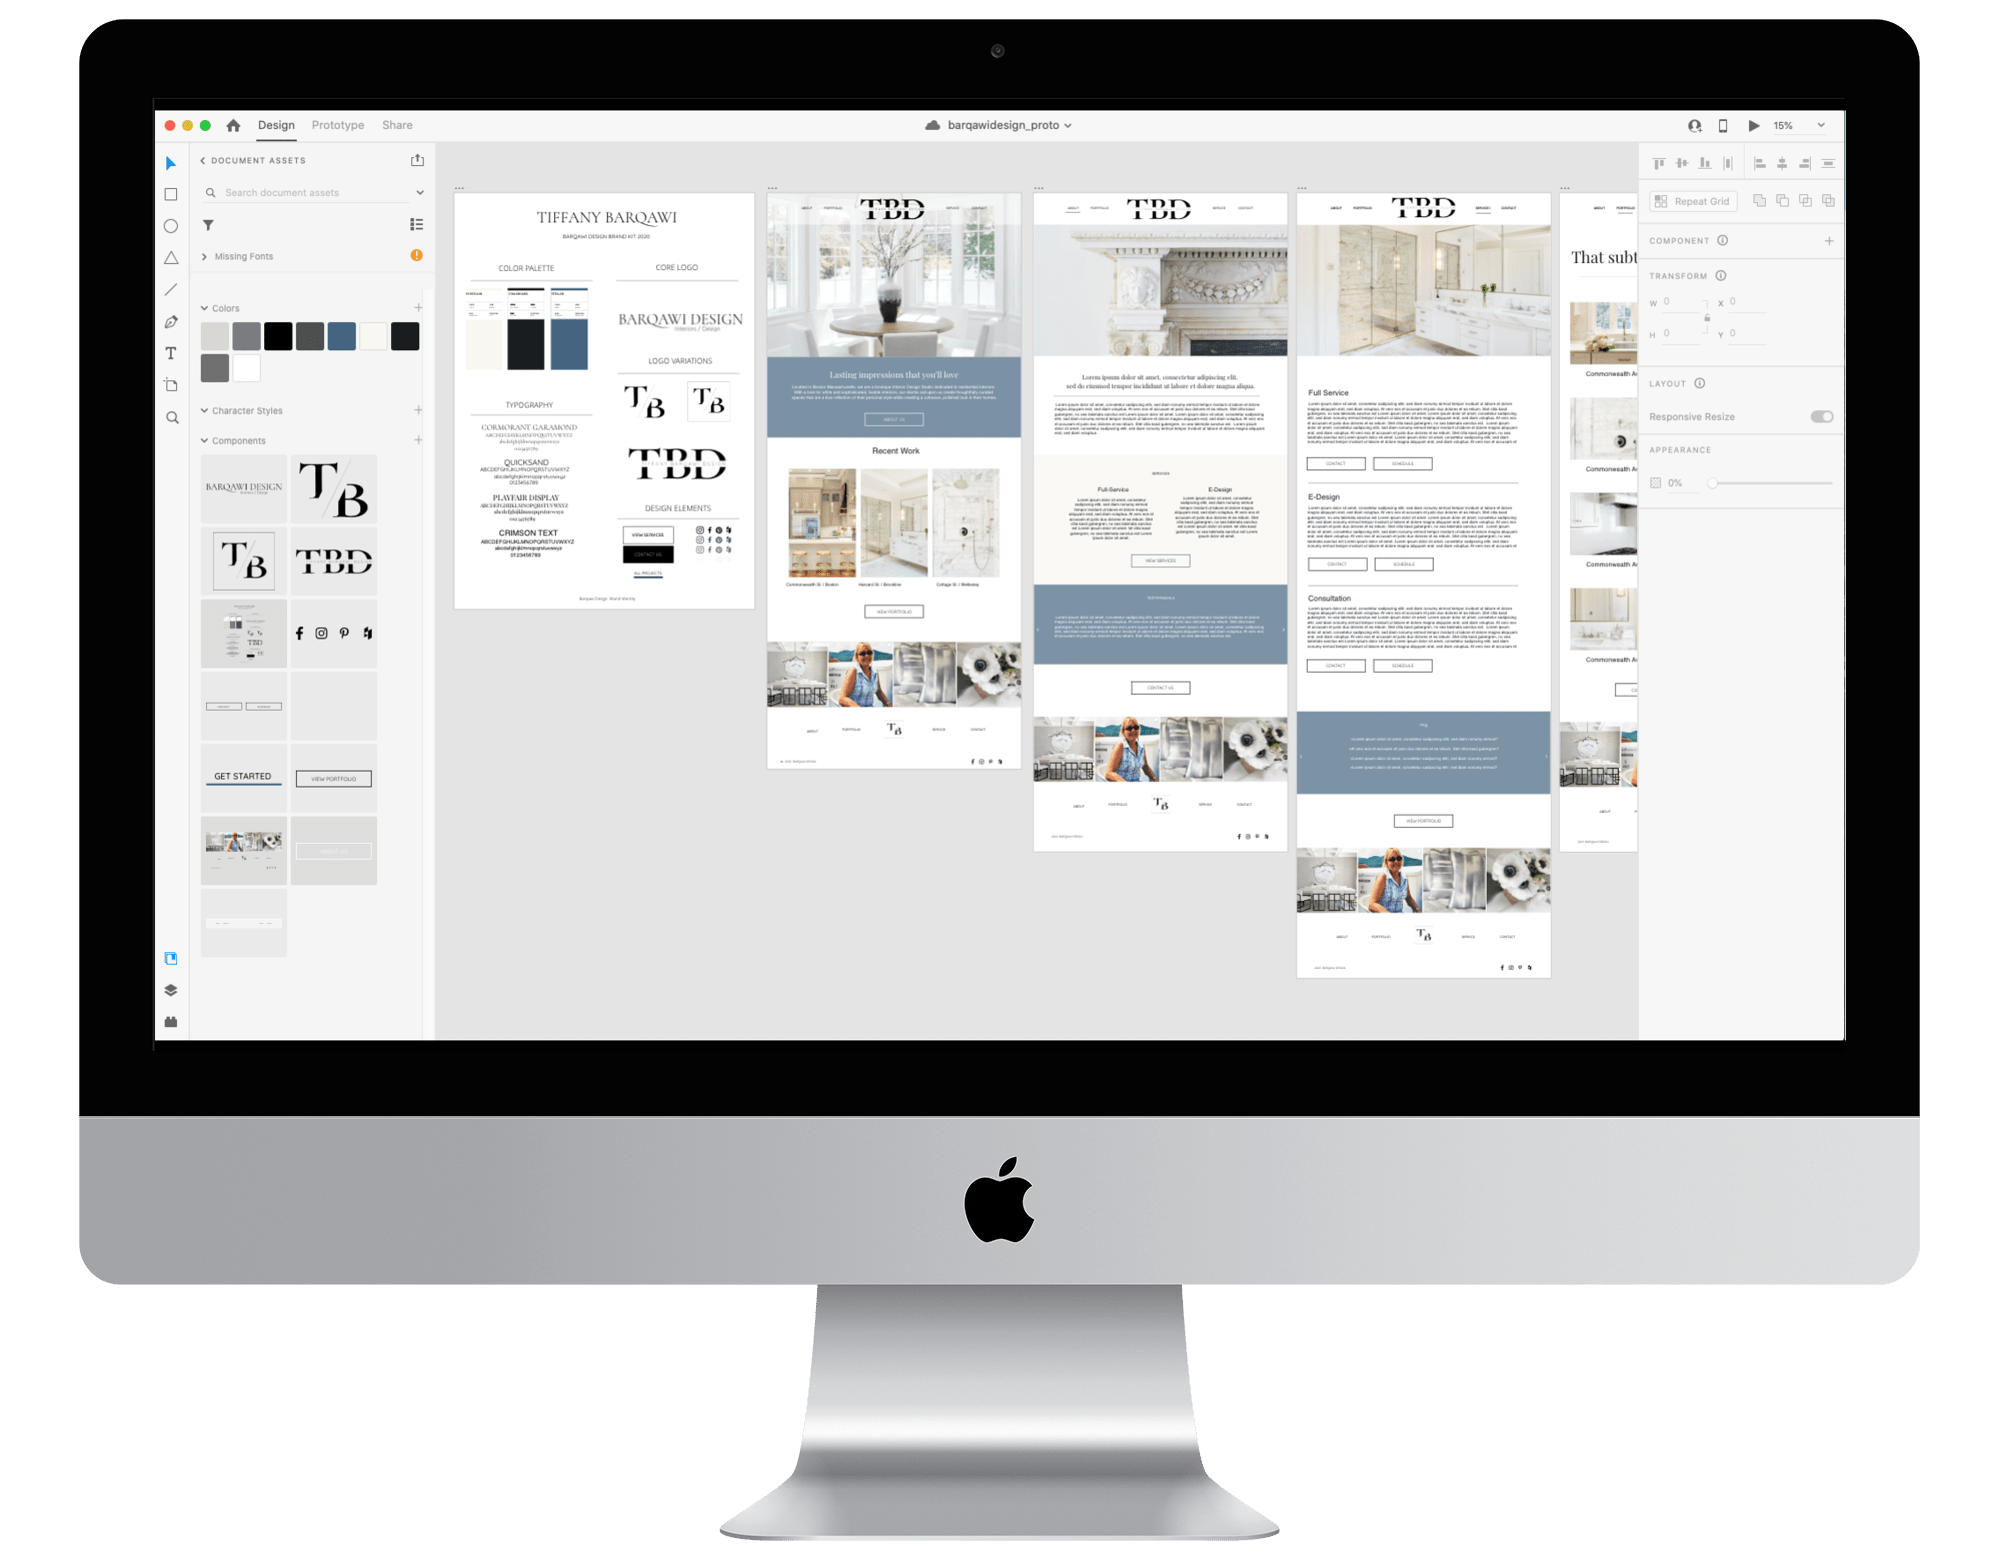 Device Mockup with AdobeXD